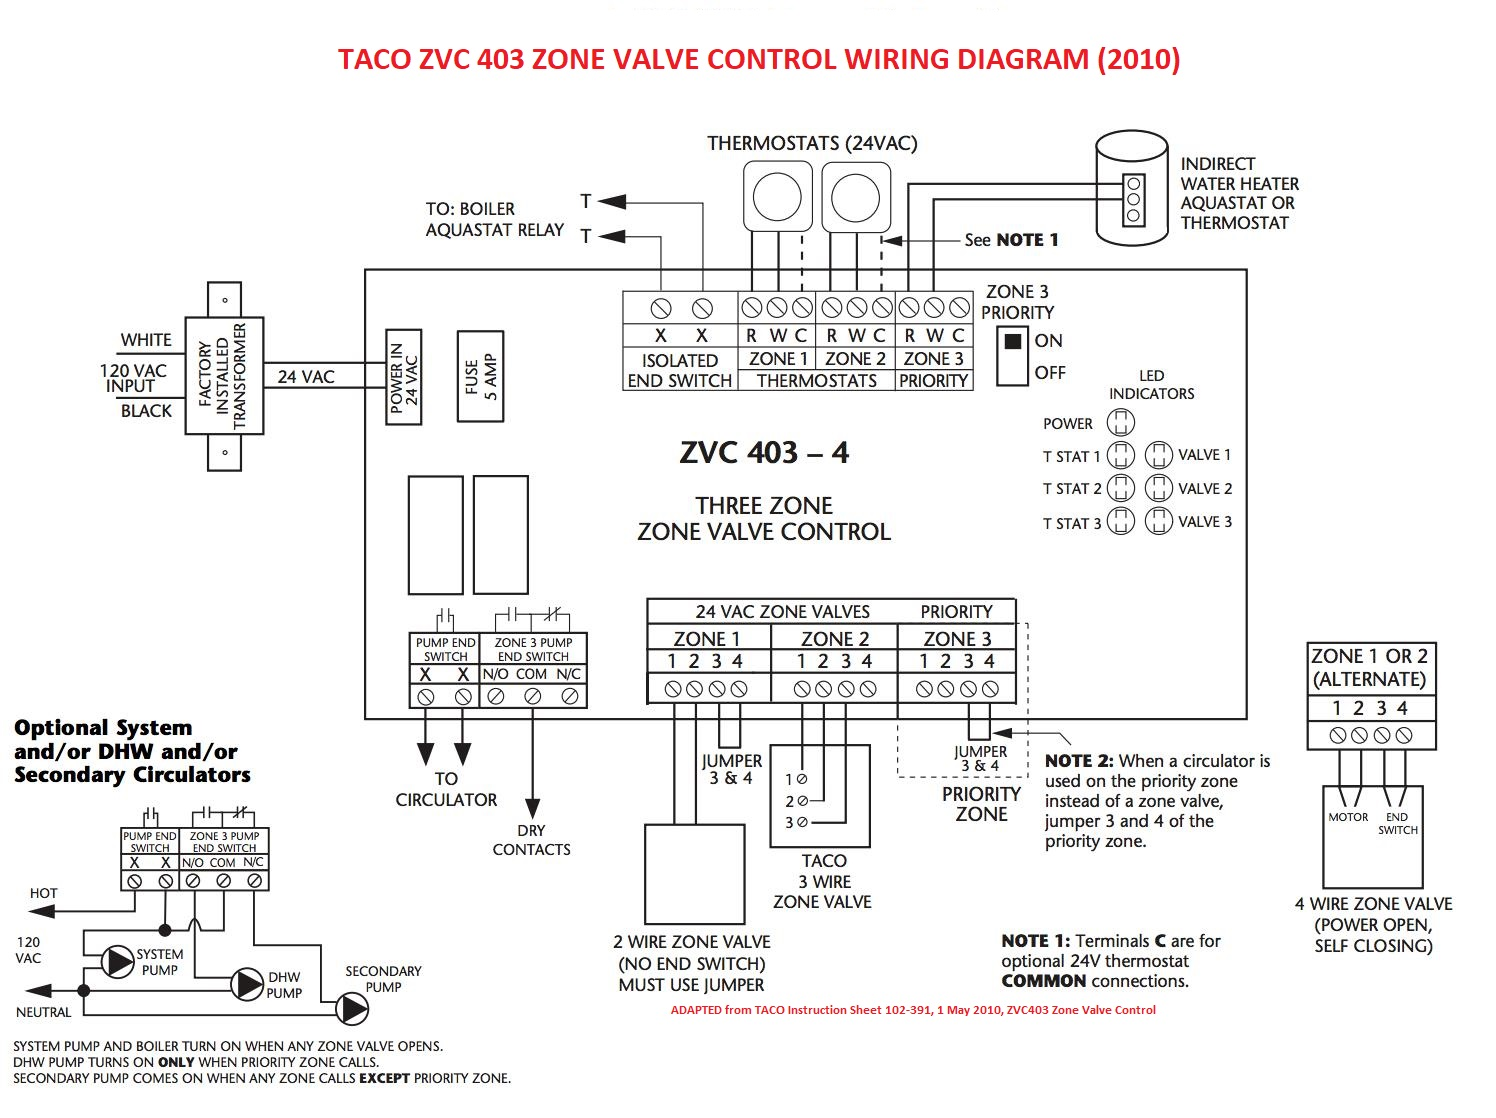 Zone Valve Wiring Manuals Installation & Instructions: Guide to heating  system zone valves - Zone valve installation, inspection, repair guide